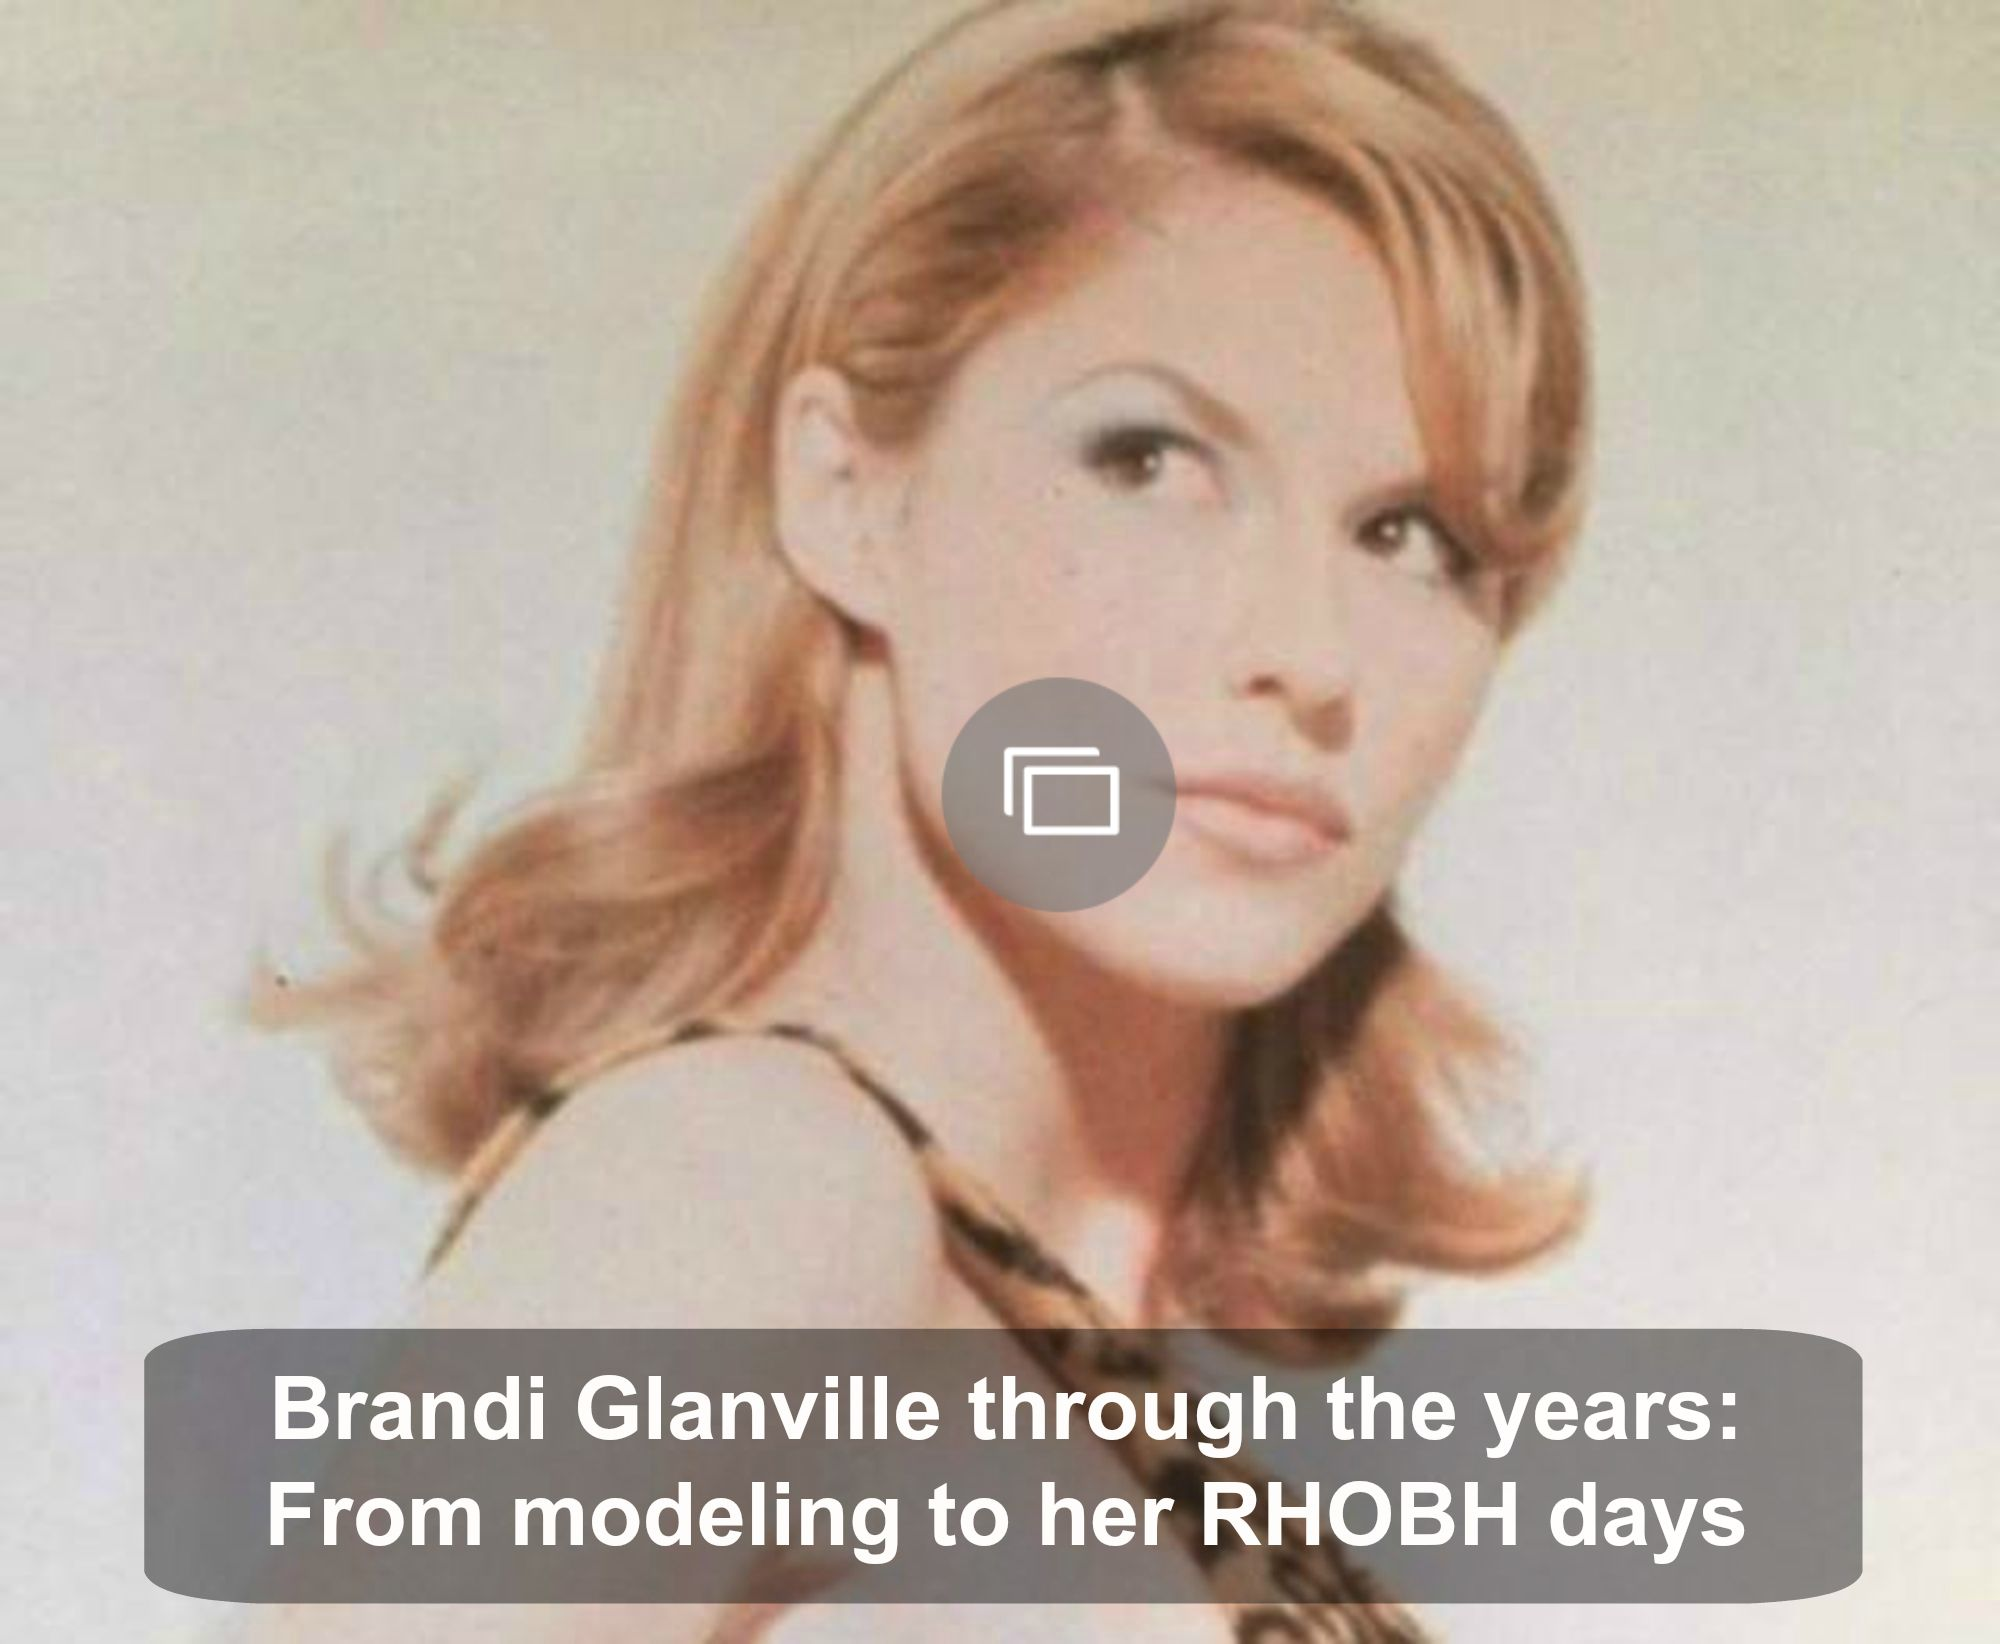 Brandi Glanville through the years